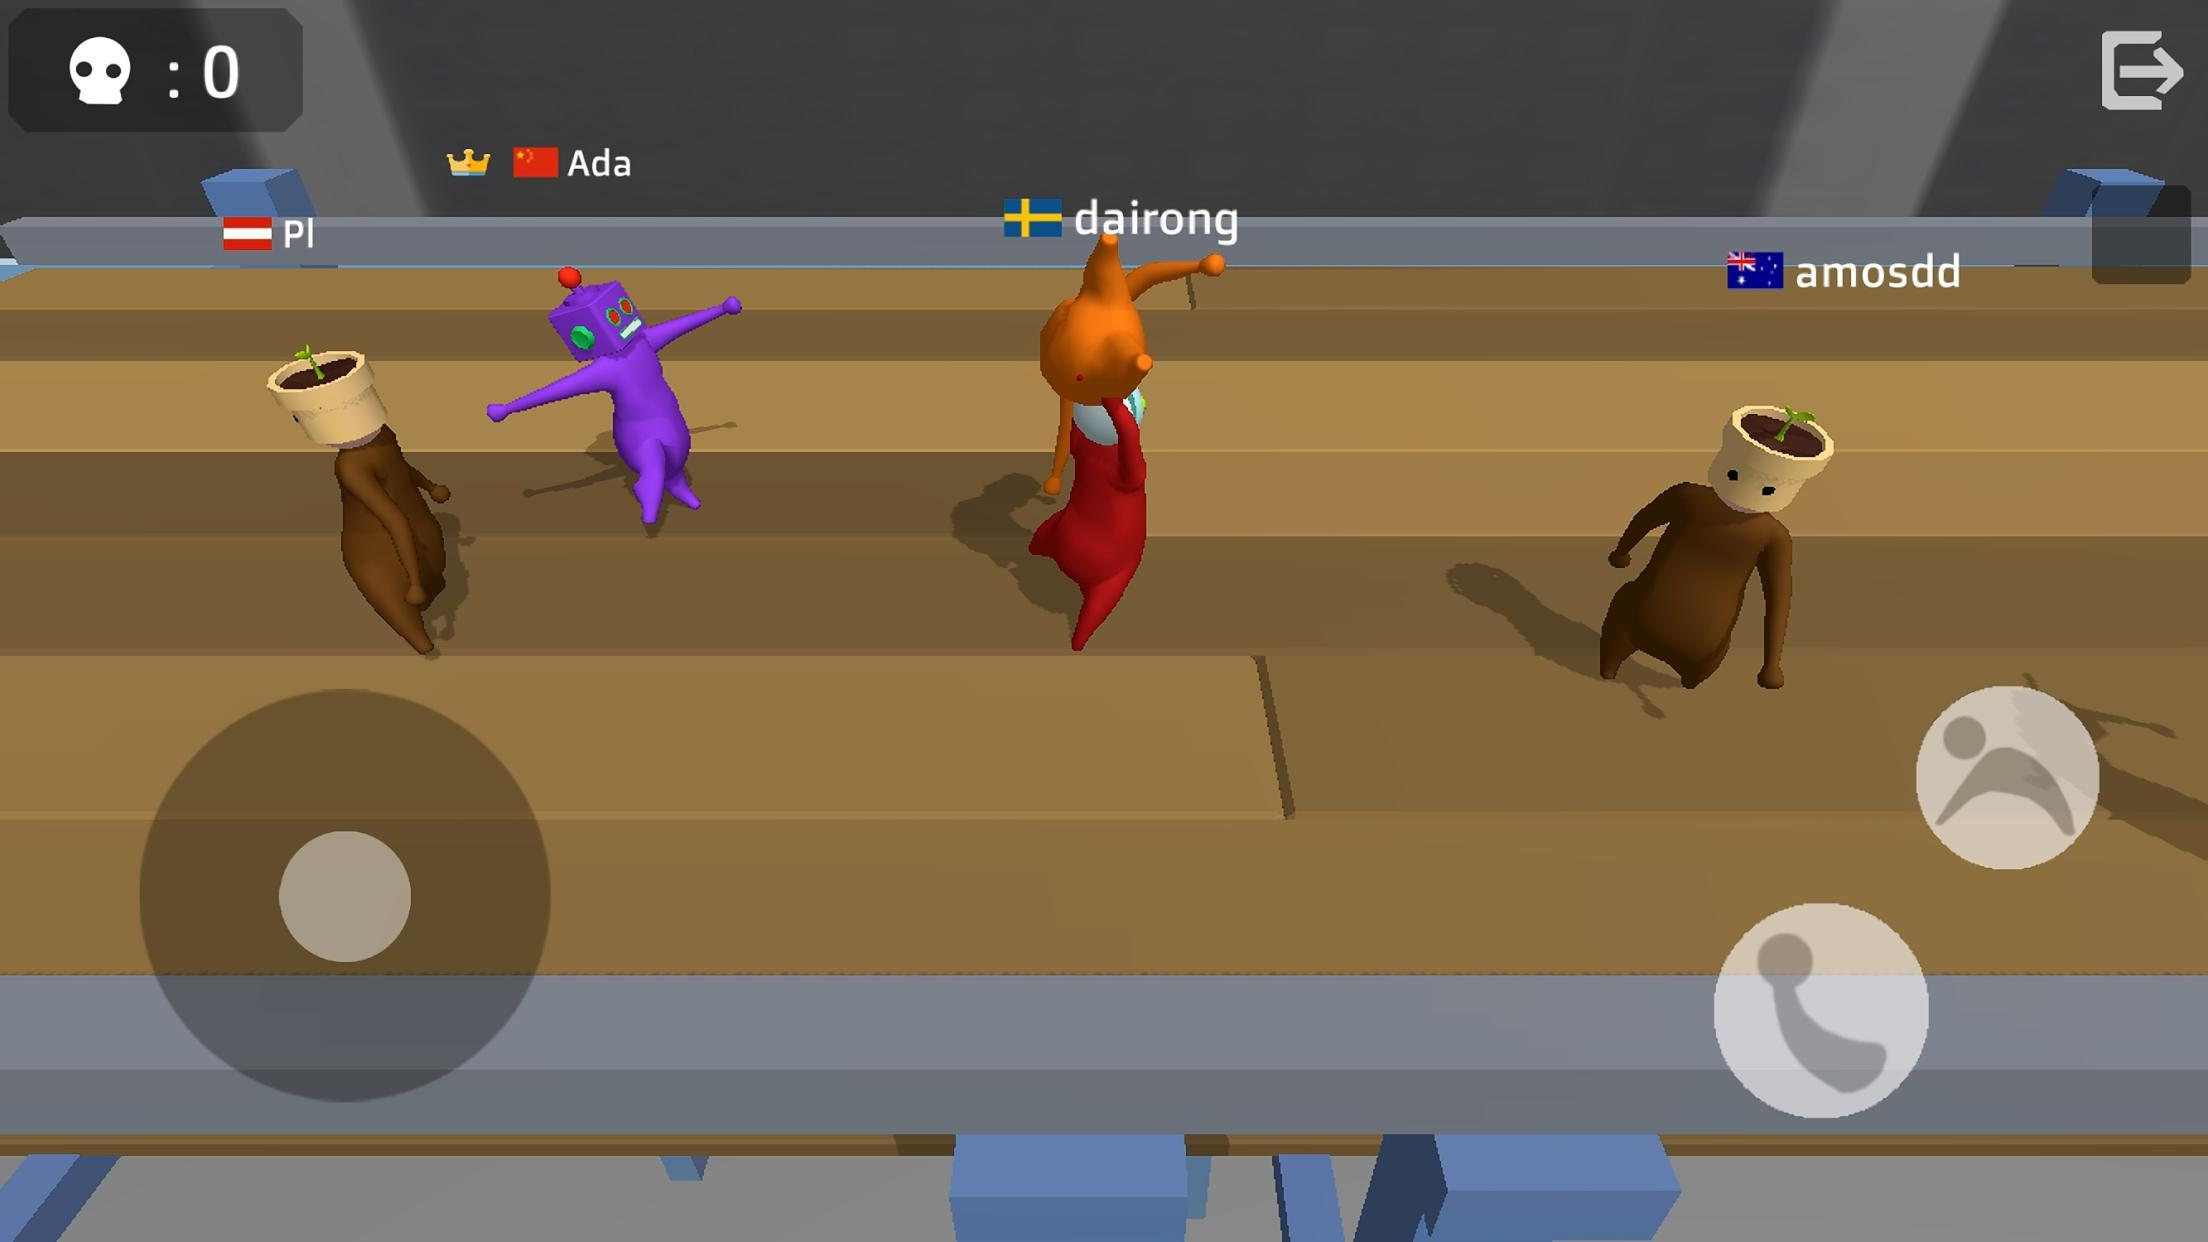 Noodleman.io - Fight Party Games 3.3 Screenshot 7